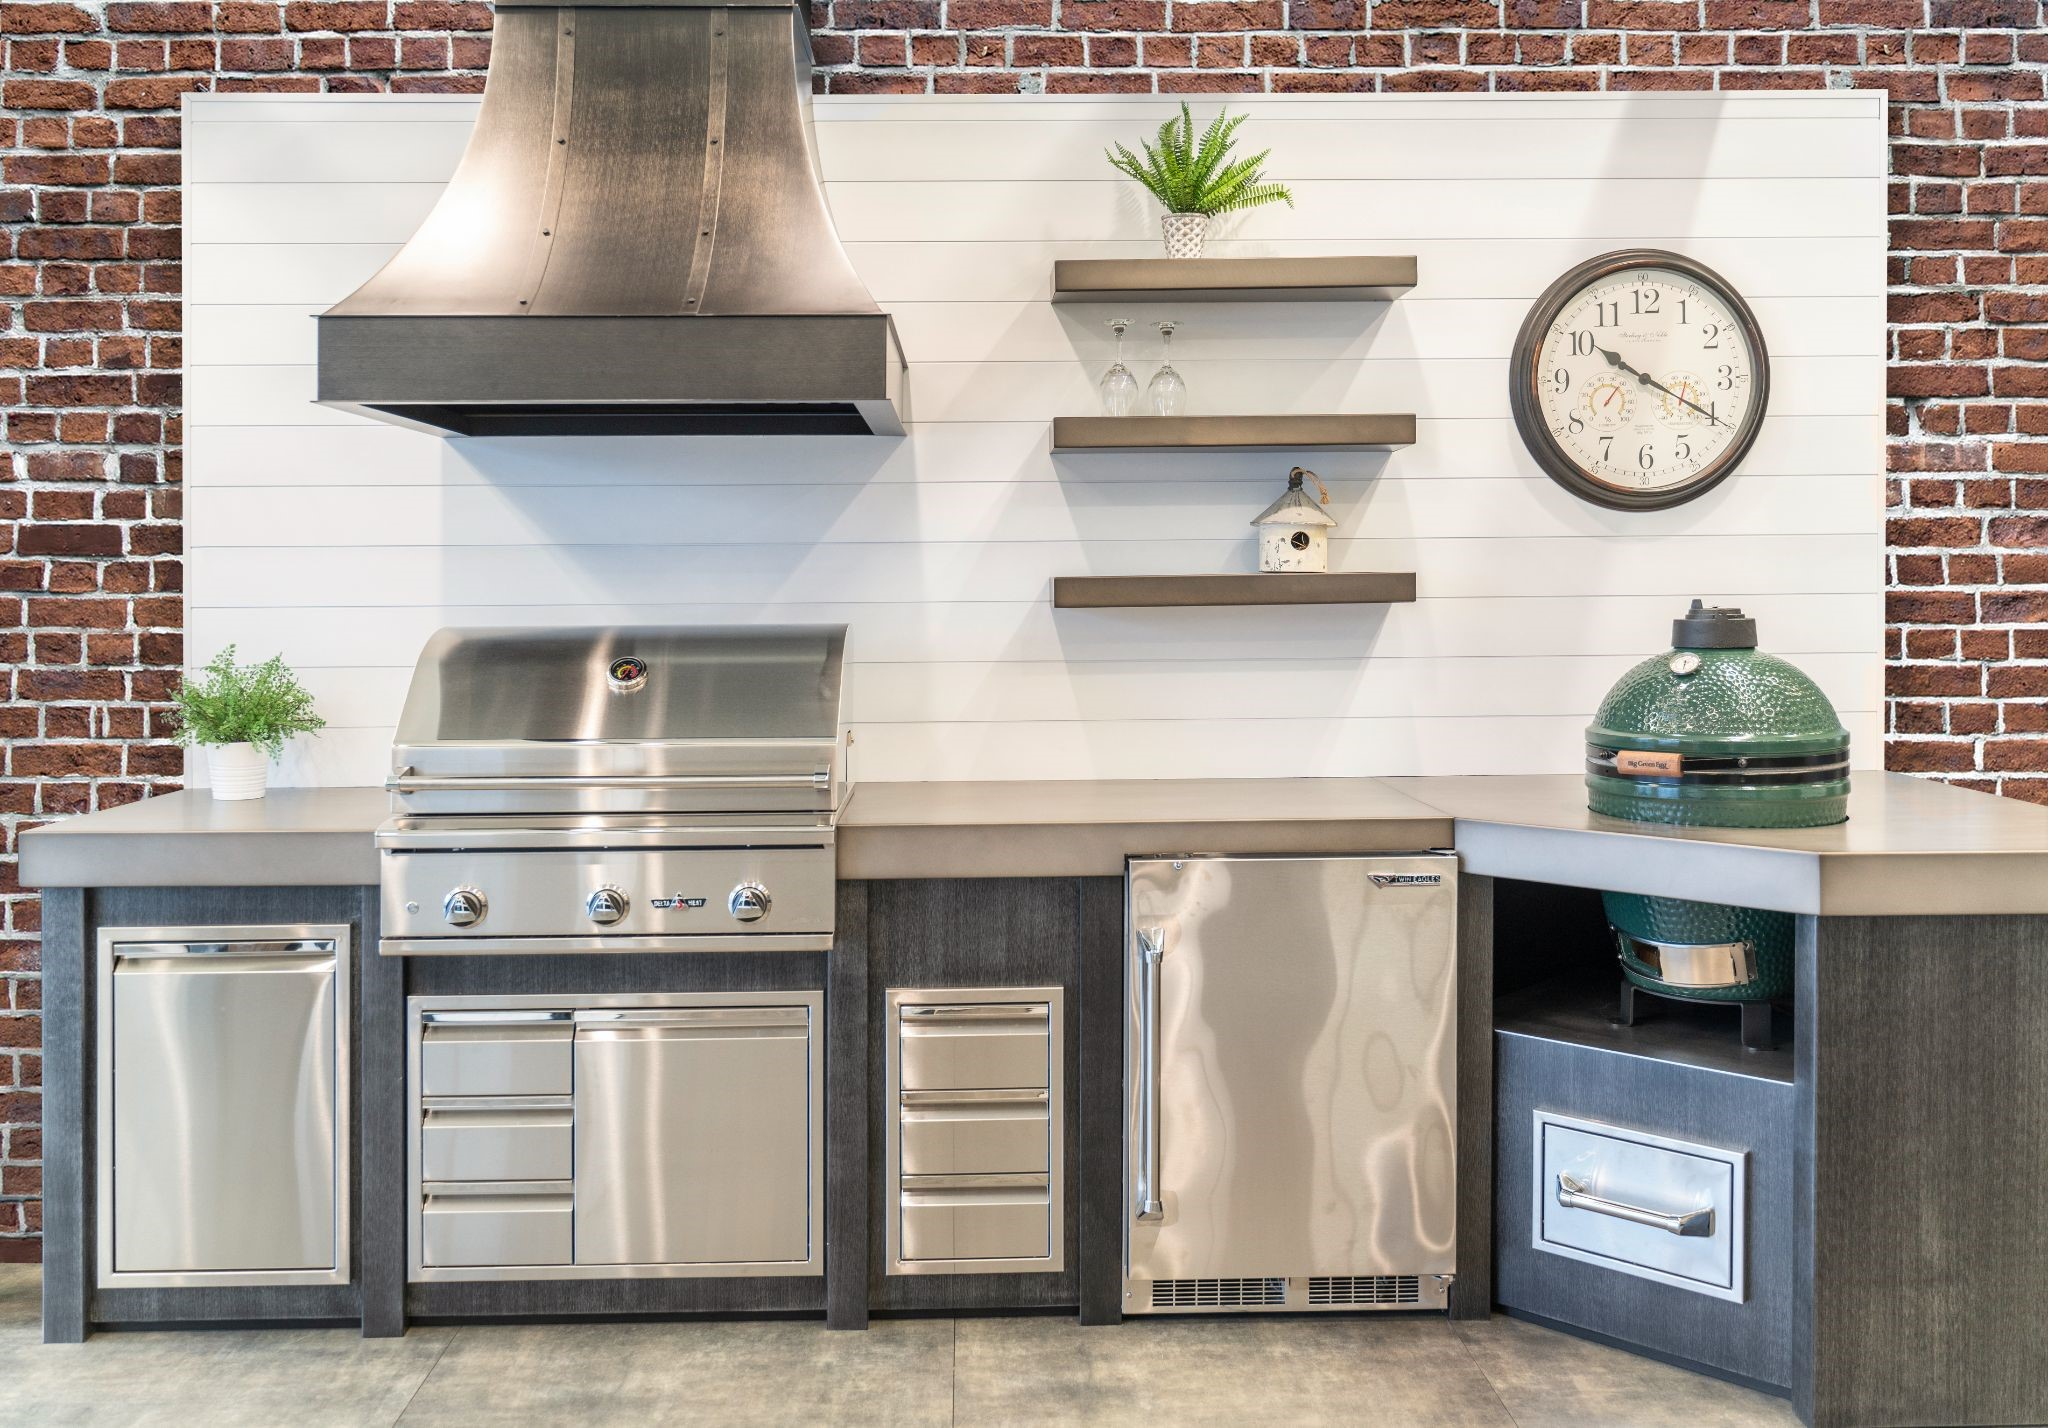 Range Hoods by Stoll Industries are available in a wide variety of finishes